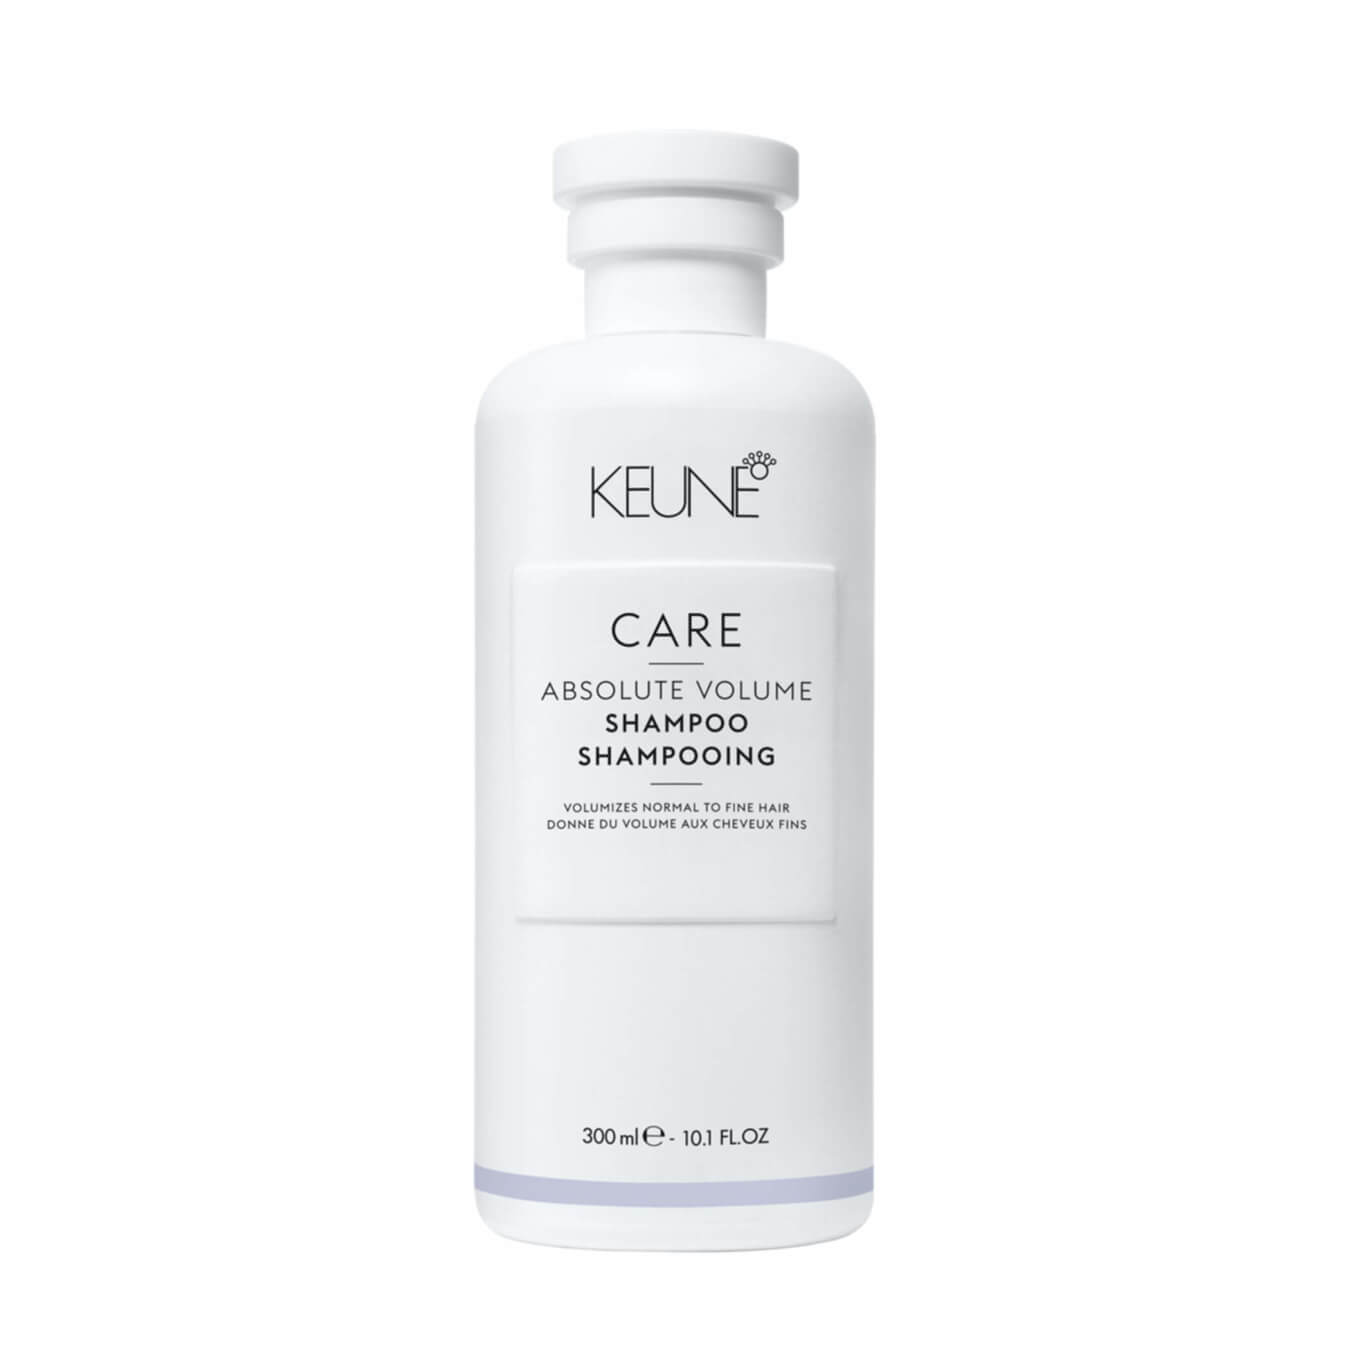 Koop Keune Care Absolute Volume Shampoo 300ml